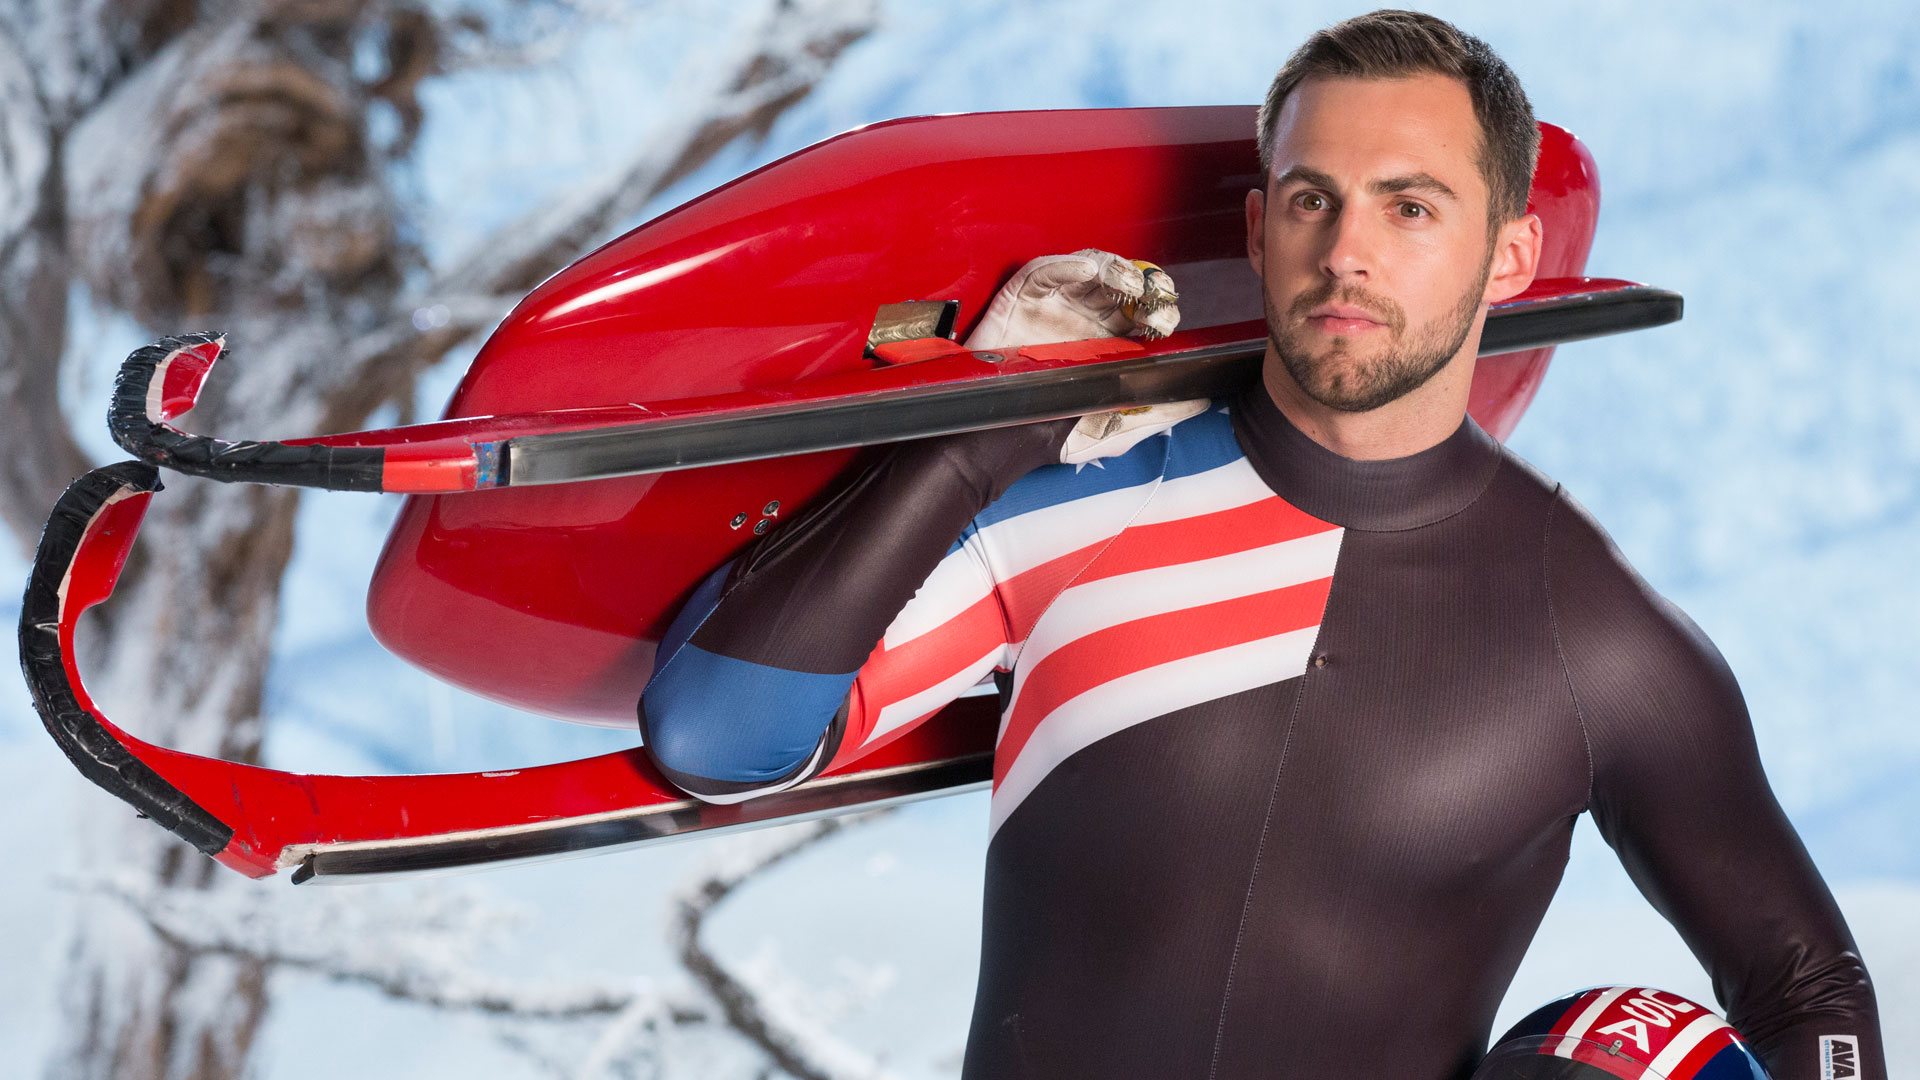 Mazdzer posing with his bobsled